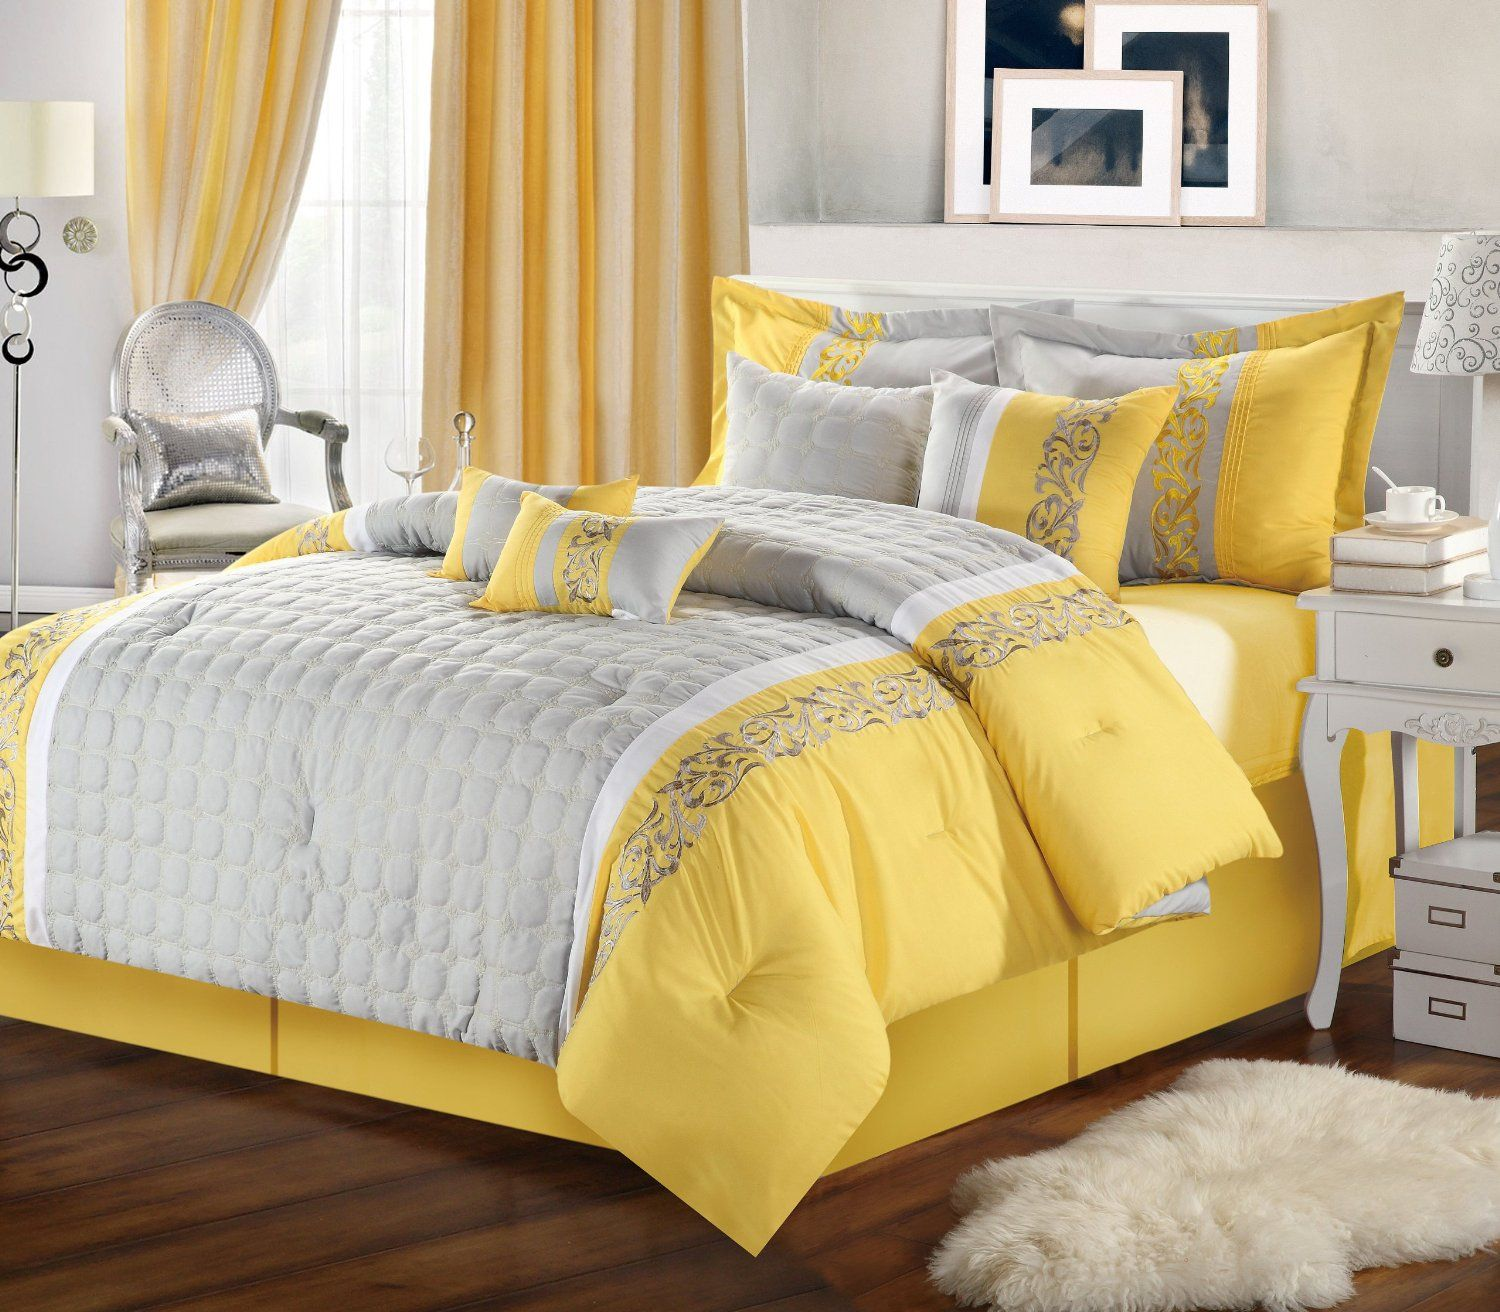 comforter sets grey and yellow bedding sets grey and yellow comforter sets grey and yellow bedding sets grey and yellow bedroom decor ideas